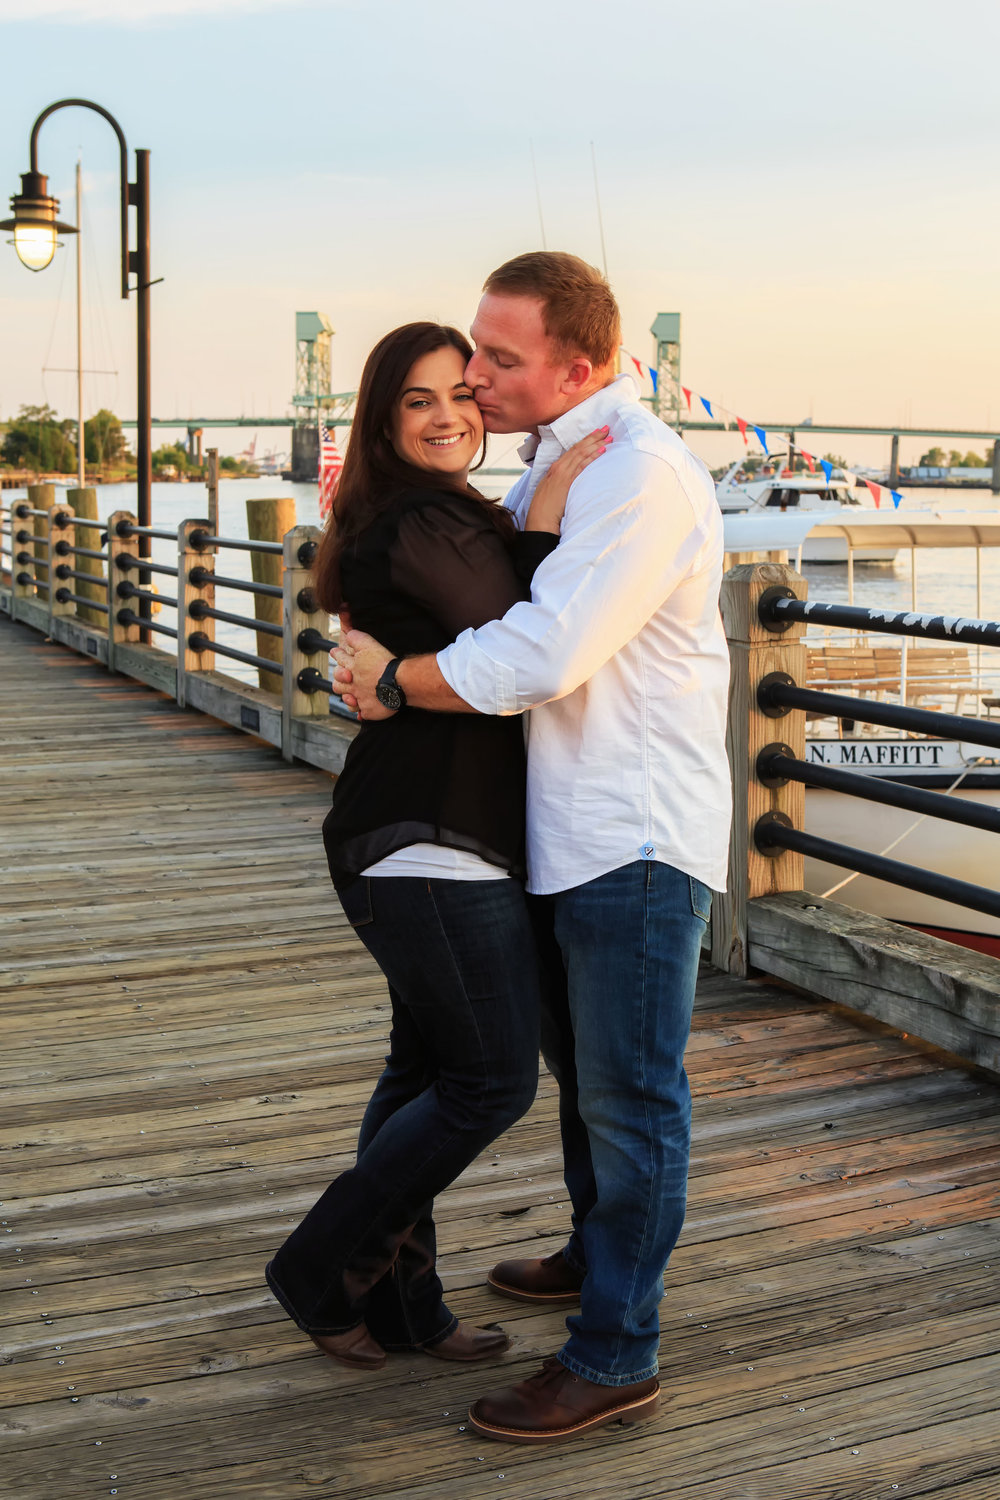 Wilmington_NC_Photographer_Tiffany_Abruzzo_Photography_Engagement_31.jpg